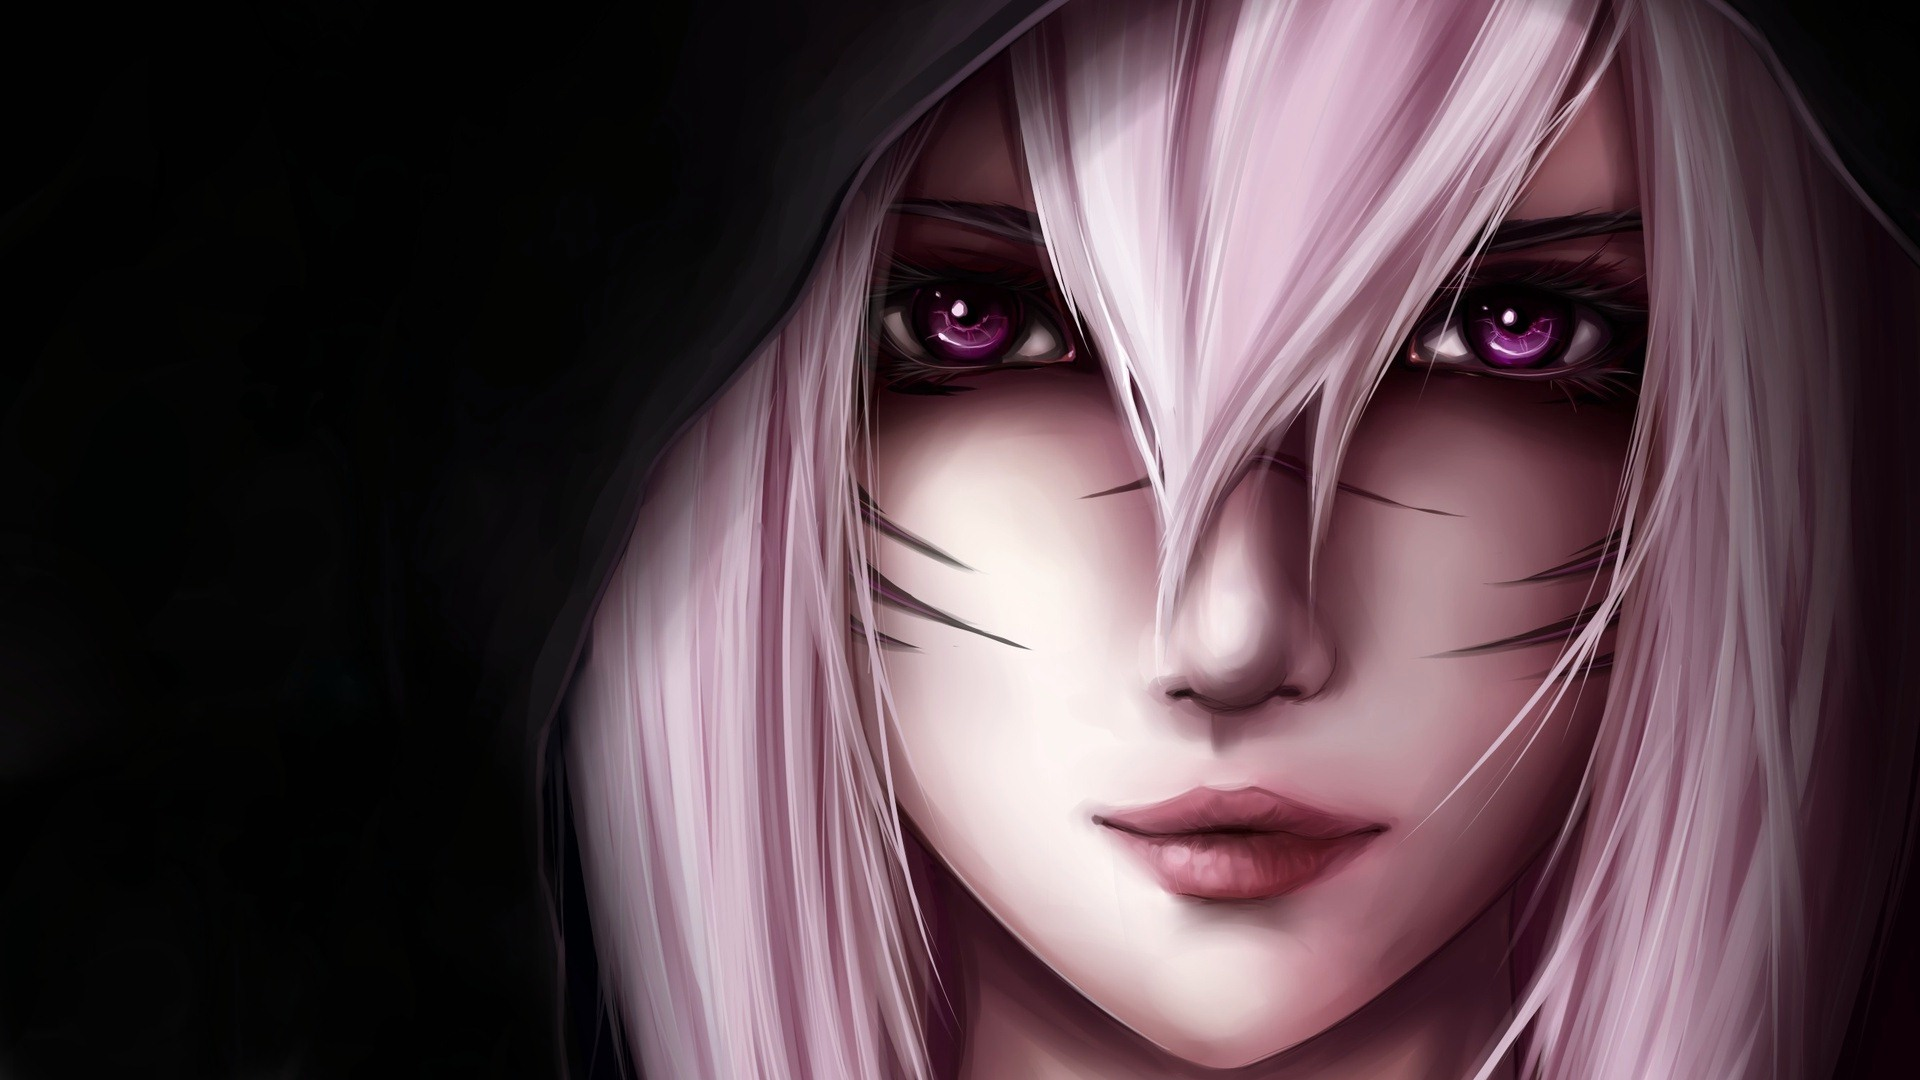 erin007 images beautiful pink eyes anime girl images hd wallpaper